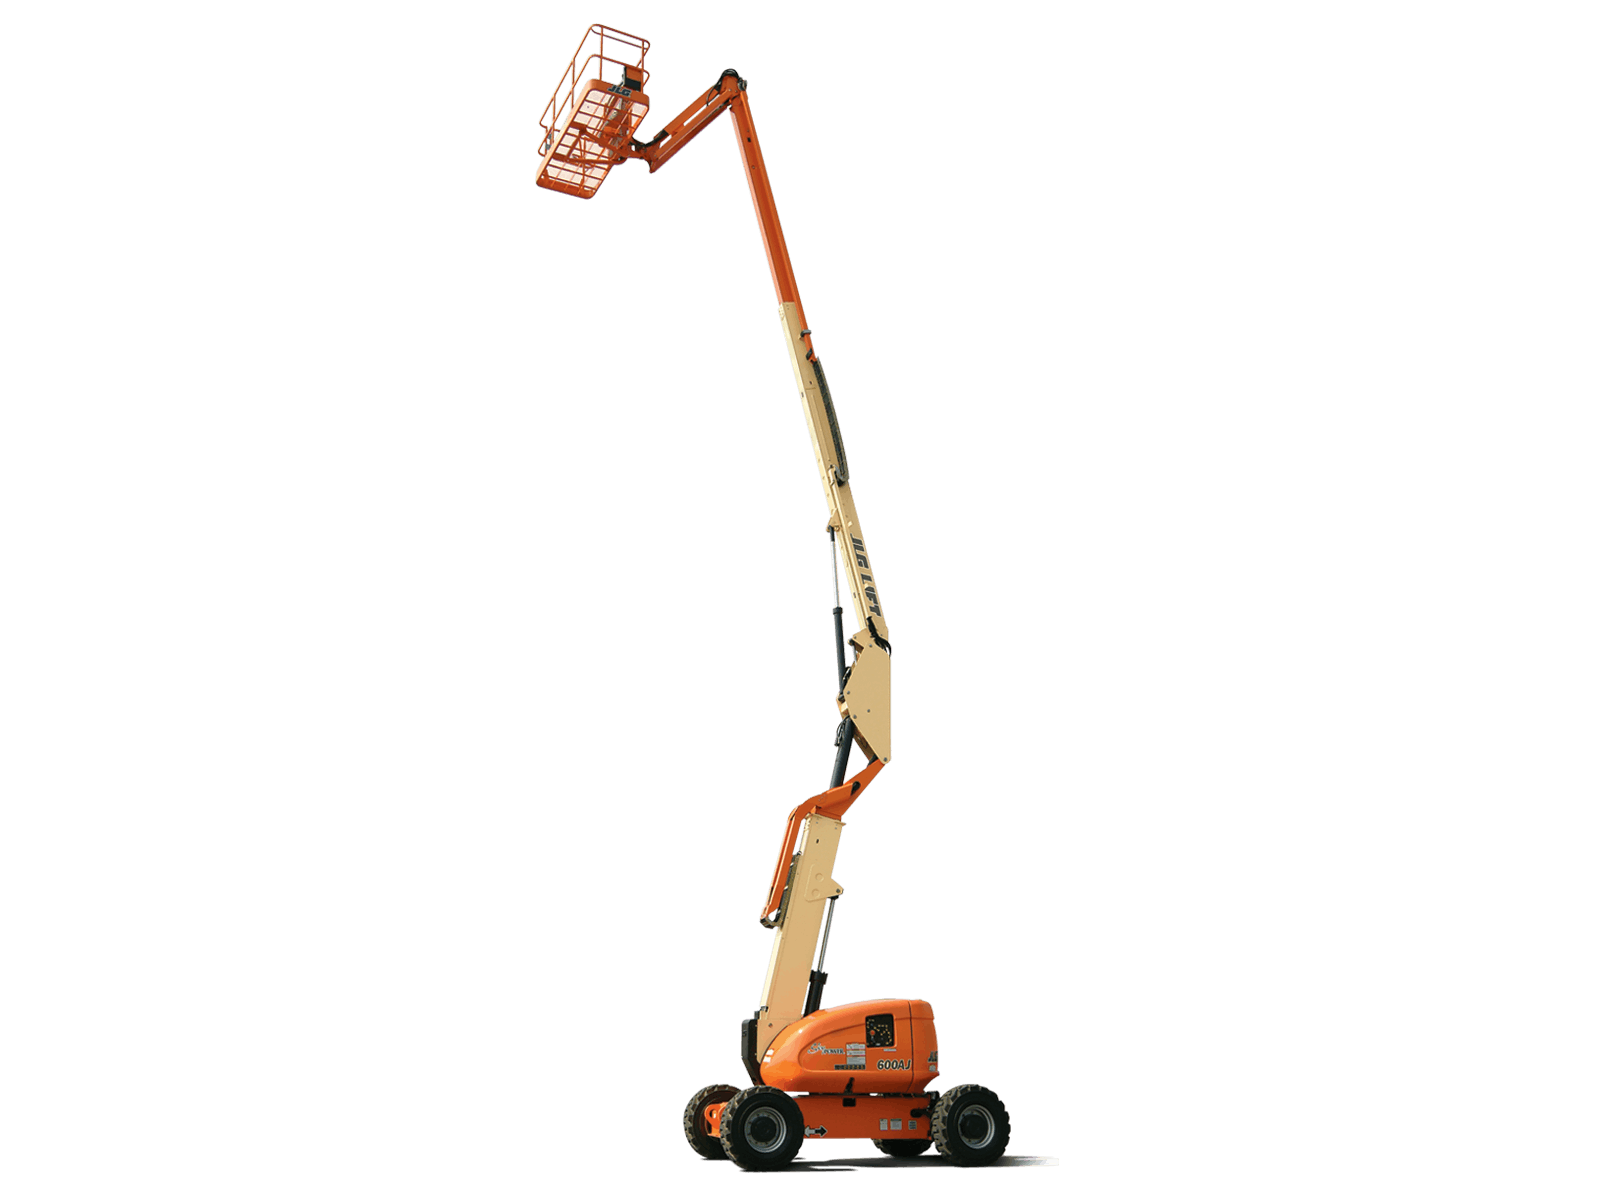 Articulated 60' Boom Lift 0